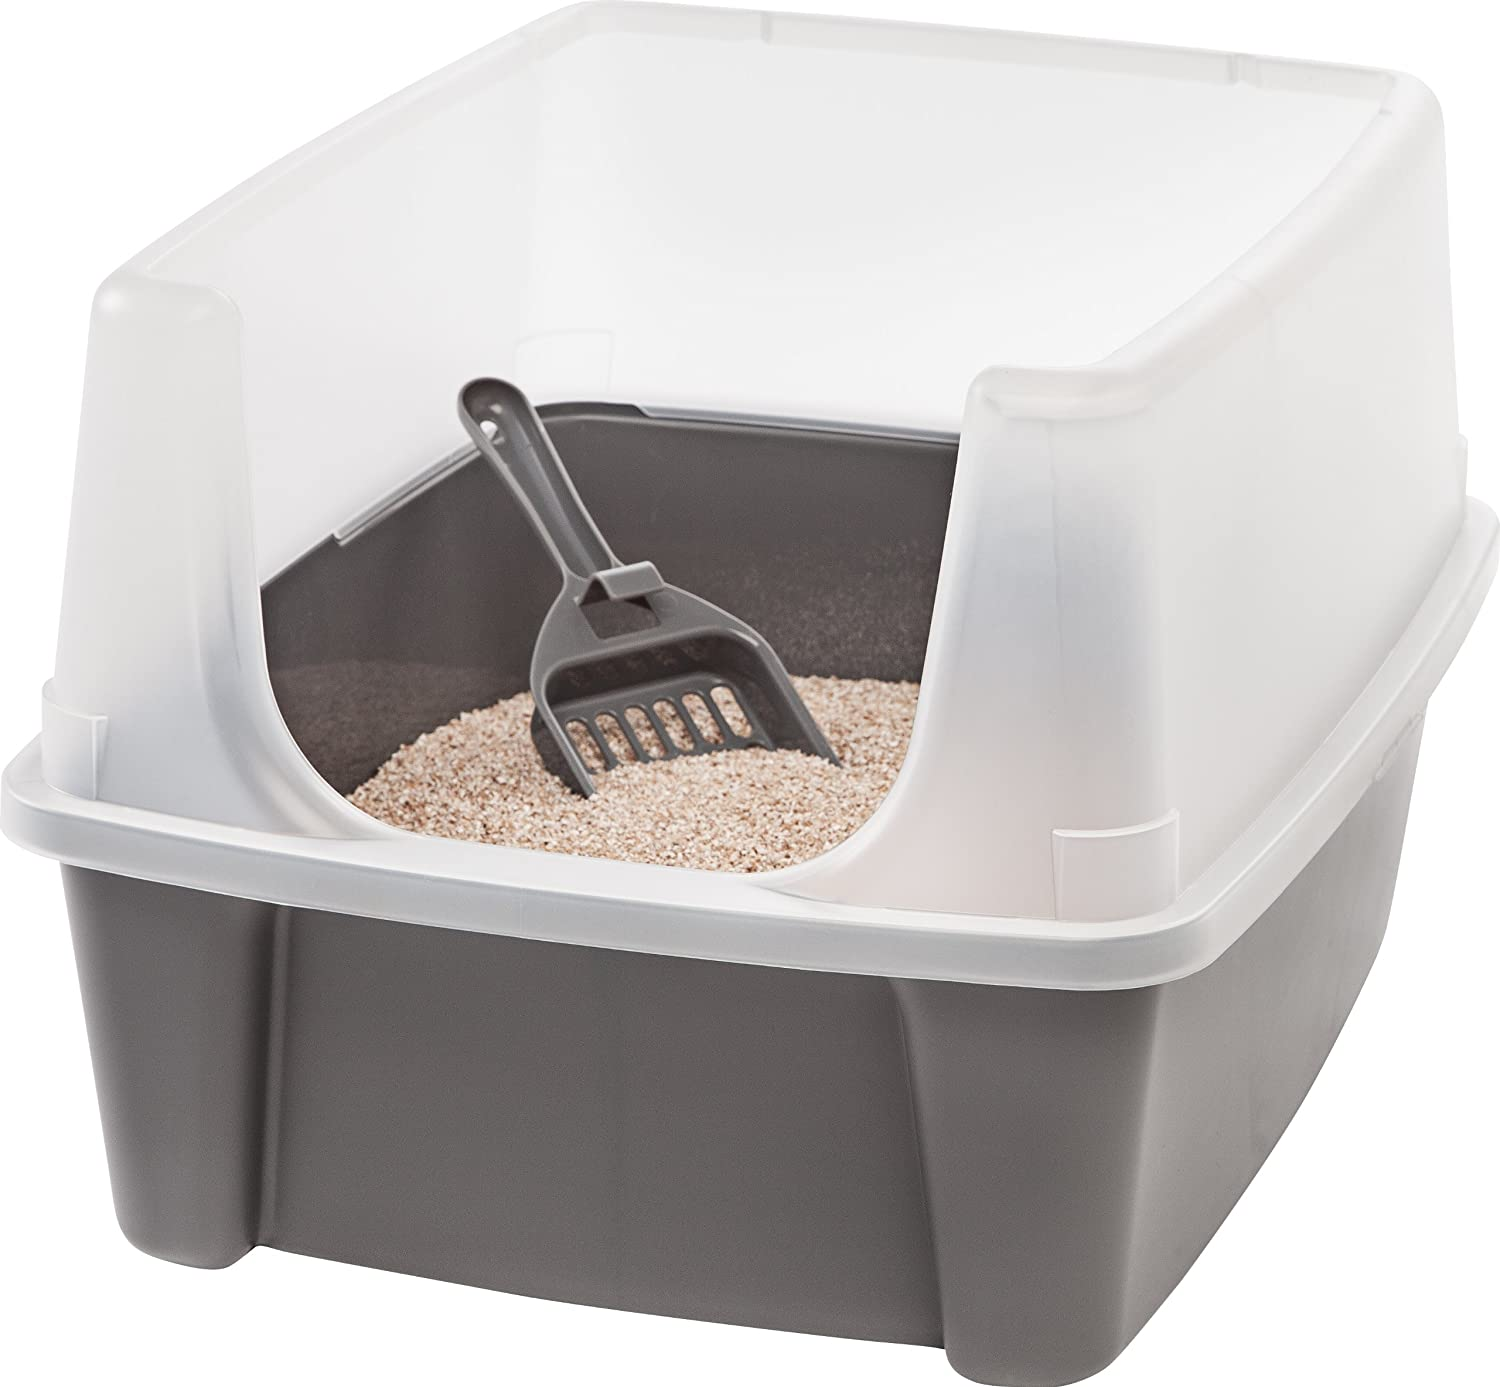 Amazon.com: IRIS Open Top Cat Litter Box Kit with Shield and Scoop, Gray:  Pet Supplies